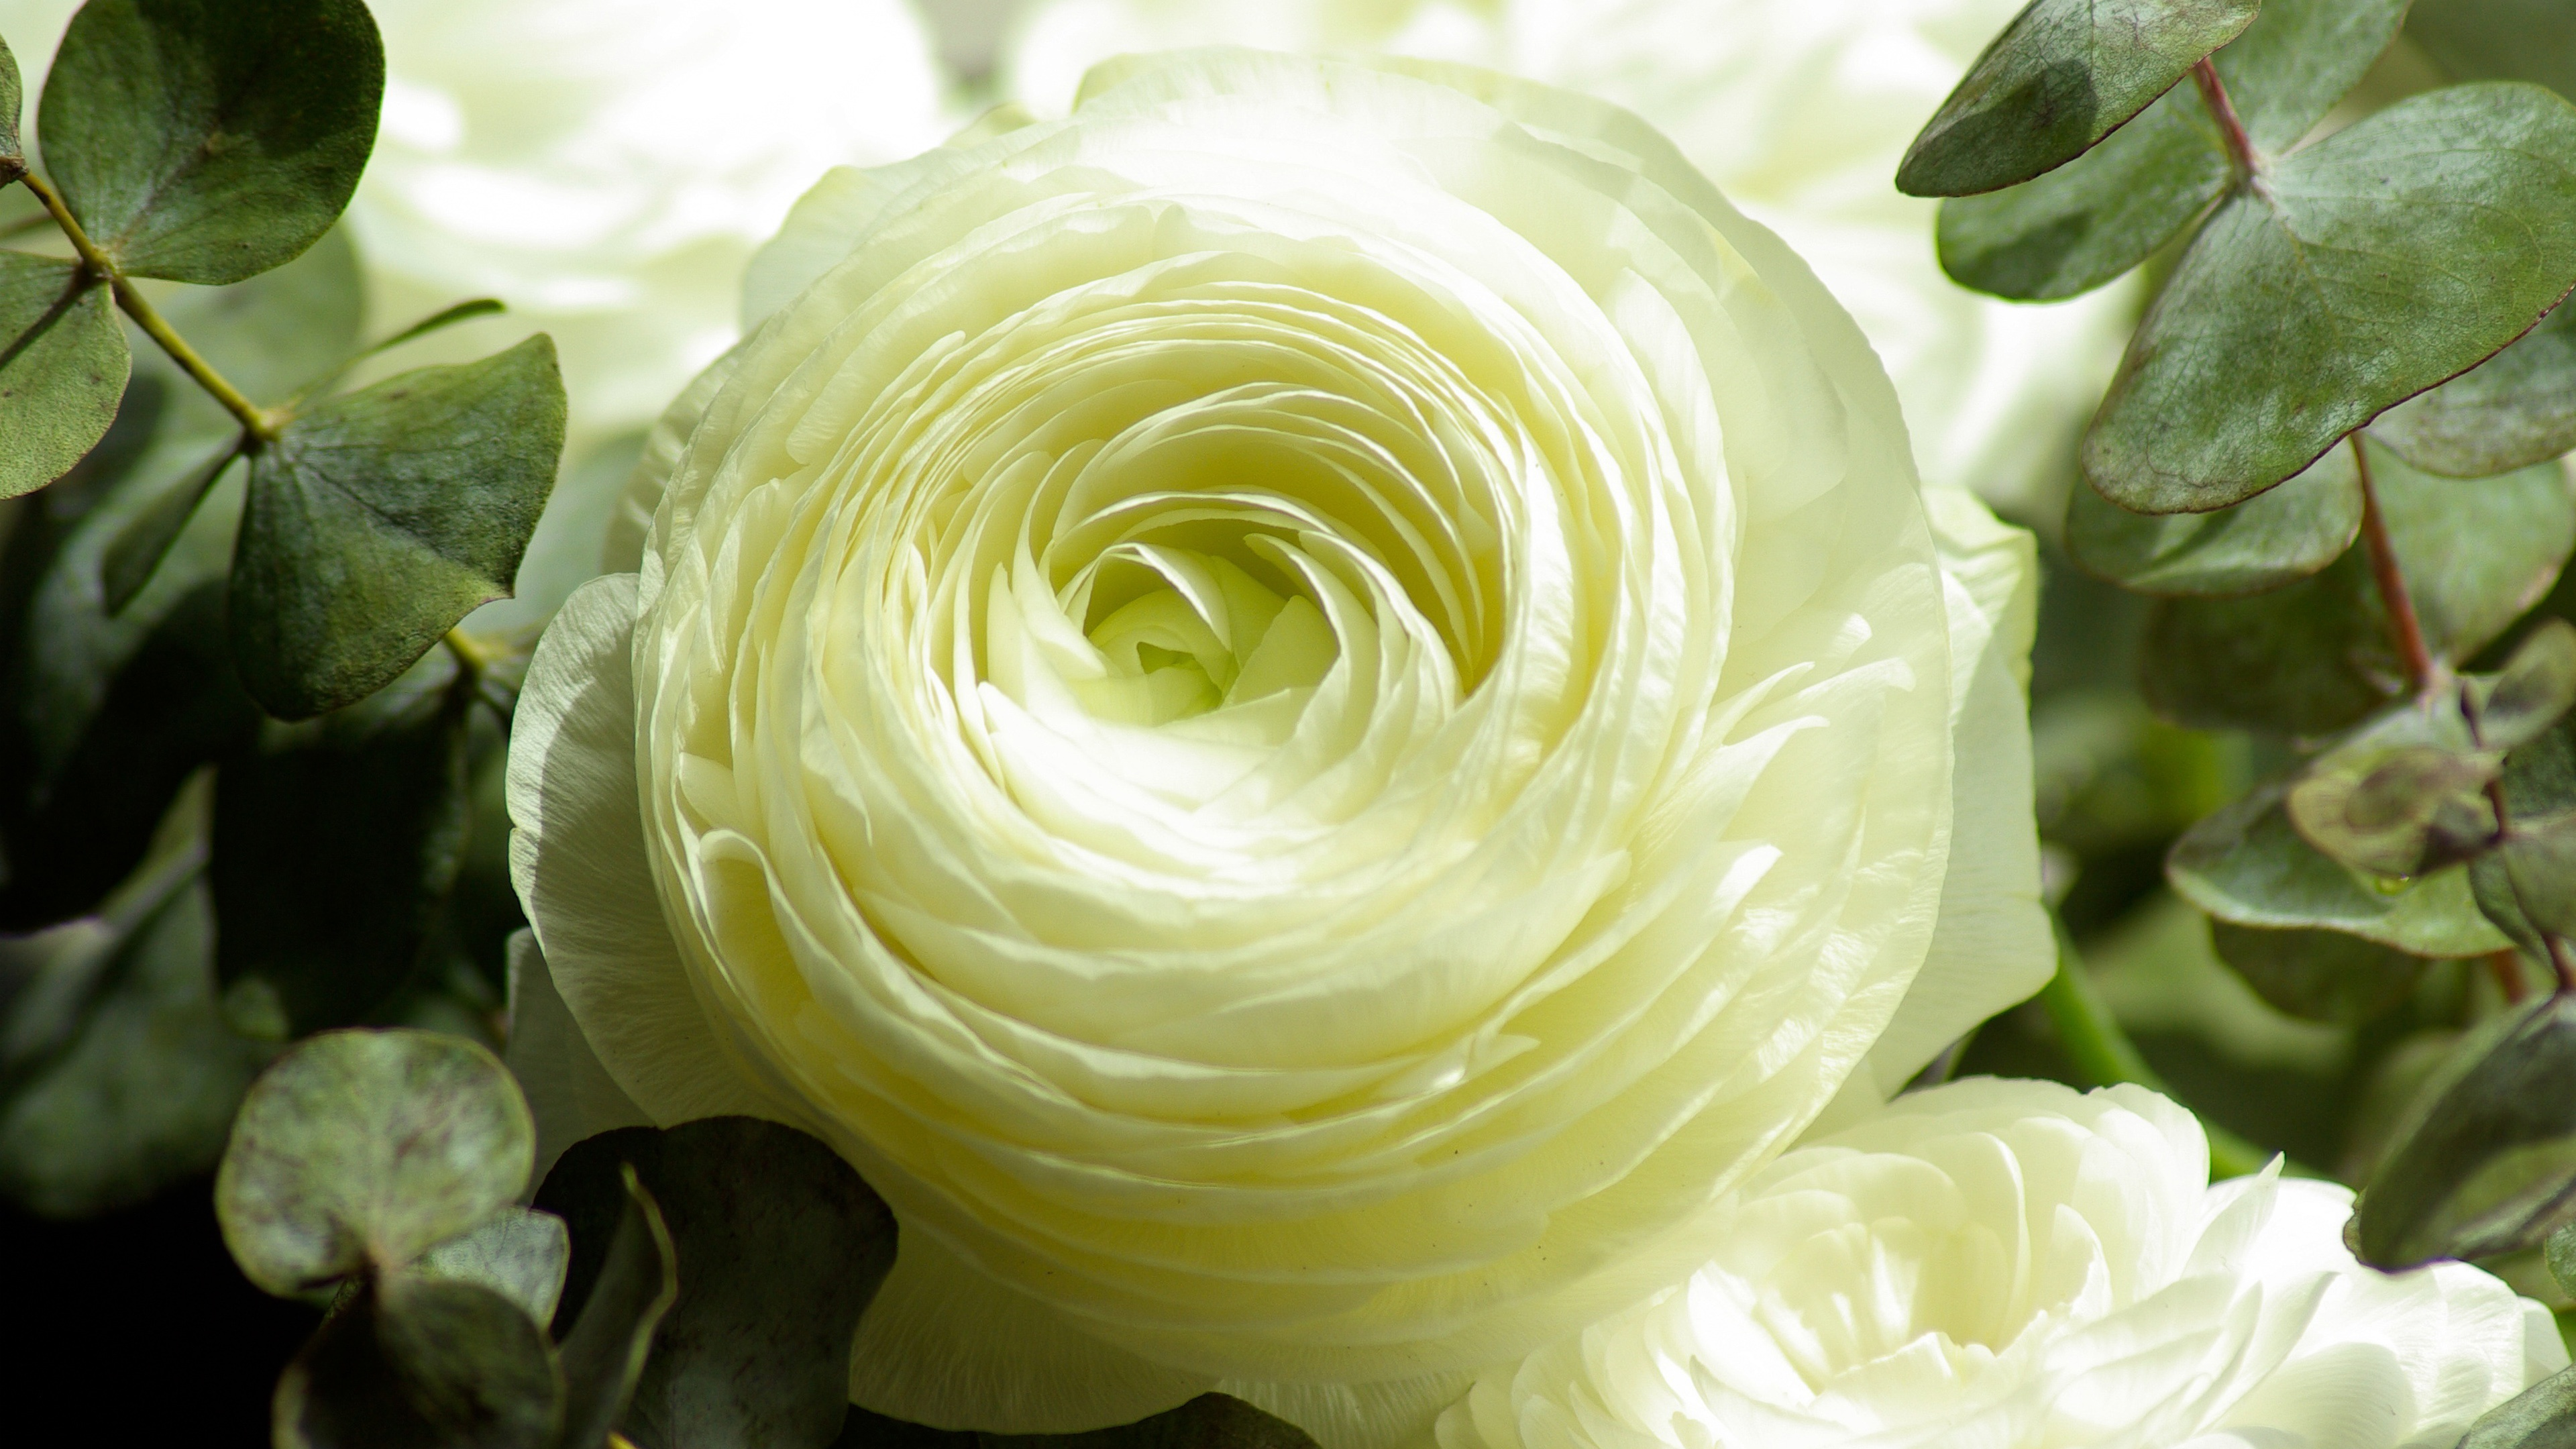 Persian Buttercup White Flower Wallpapers In Jpg Format For Free